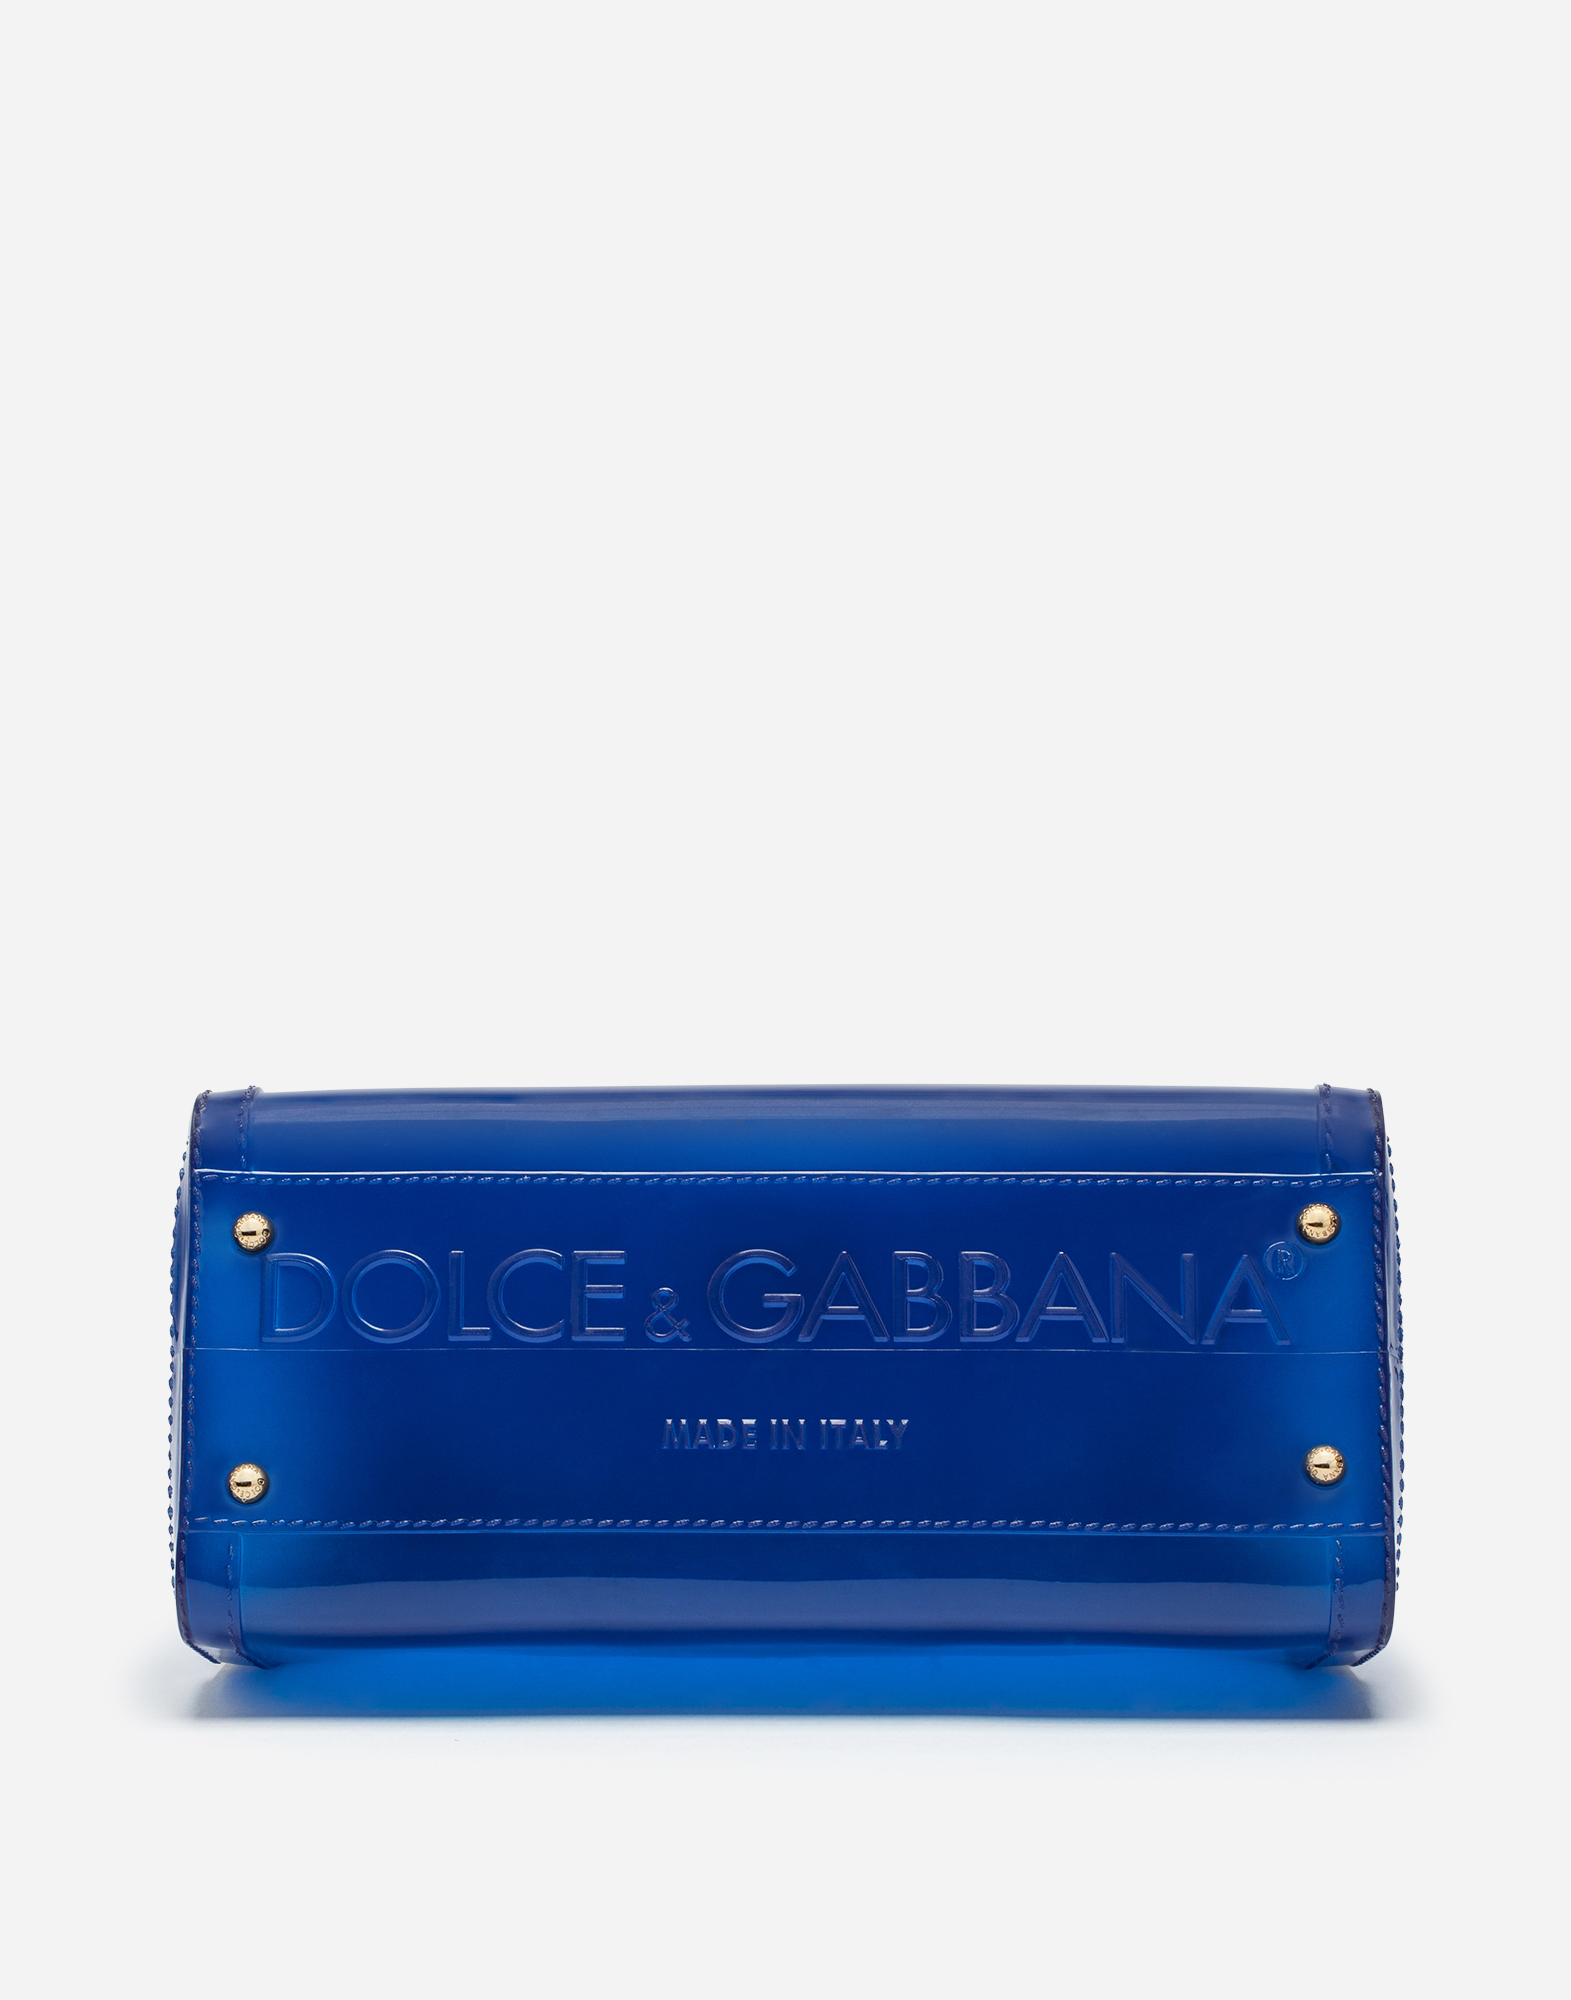 Dolce&Gabbana SEMI-TRANSPARENT RUBBER SICILY HANDBAG